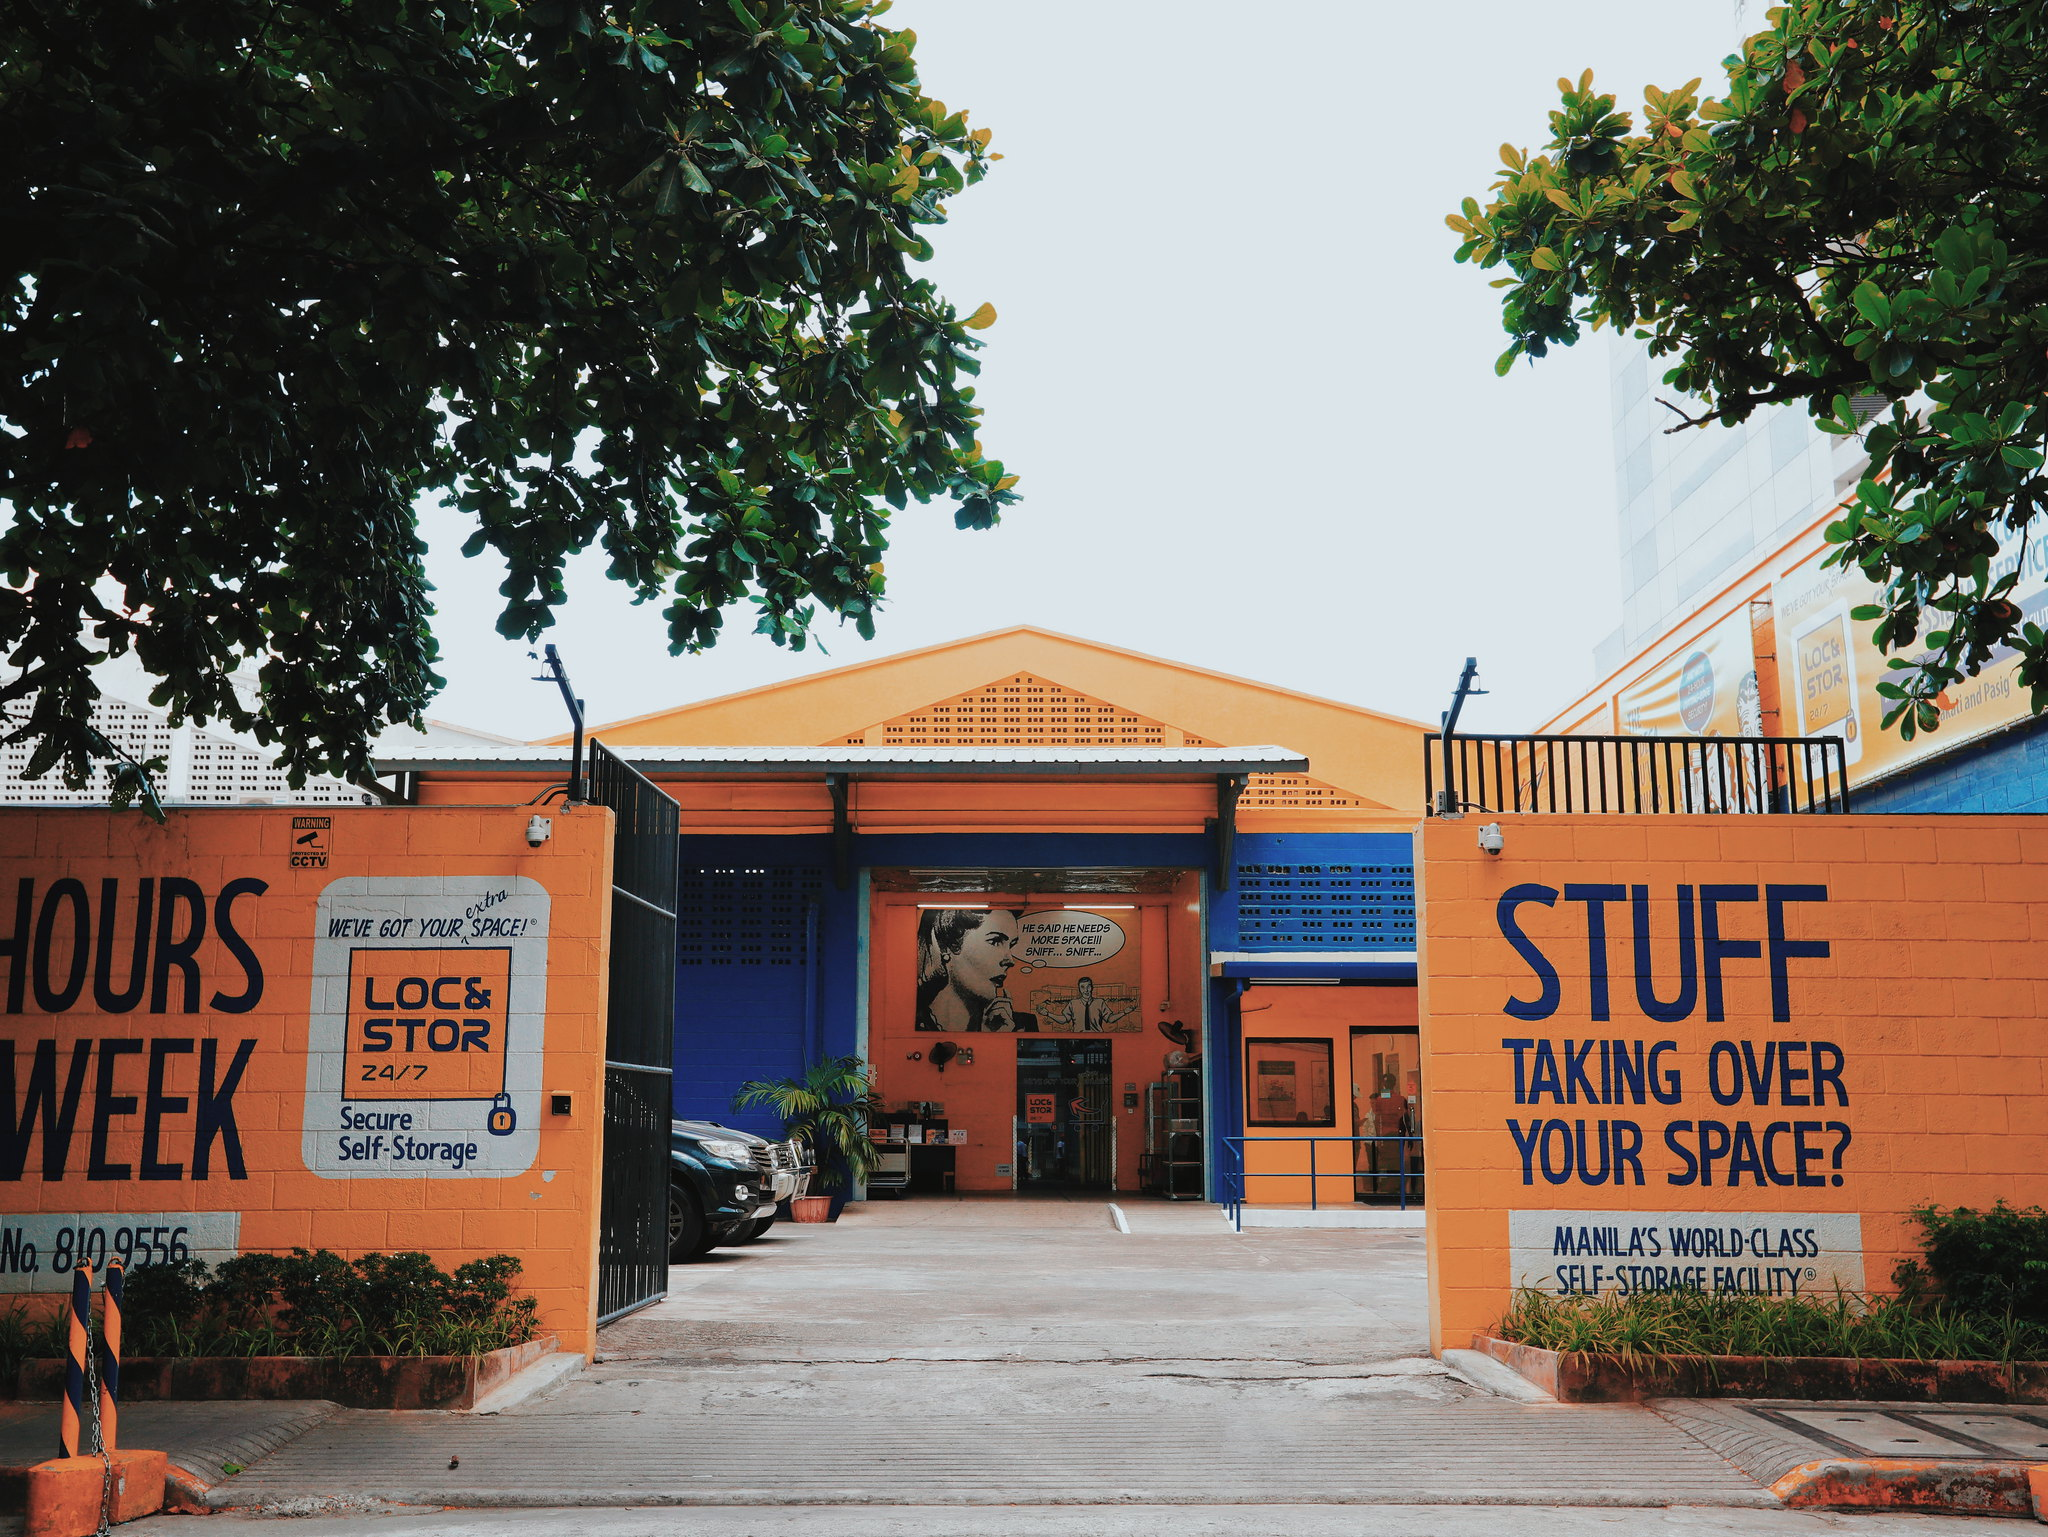 Loc&Stor 24/7: Storage Space for Rent in the Philippines